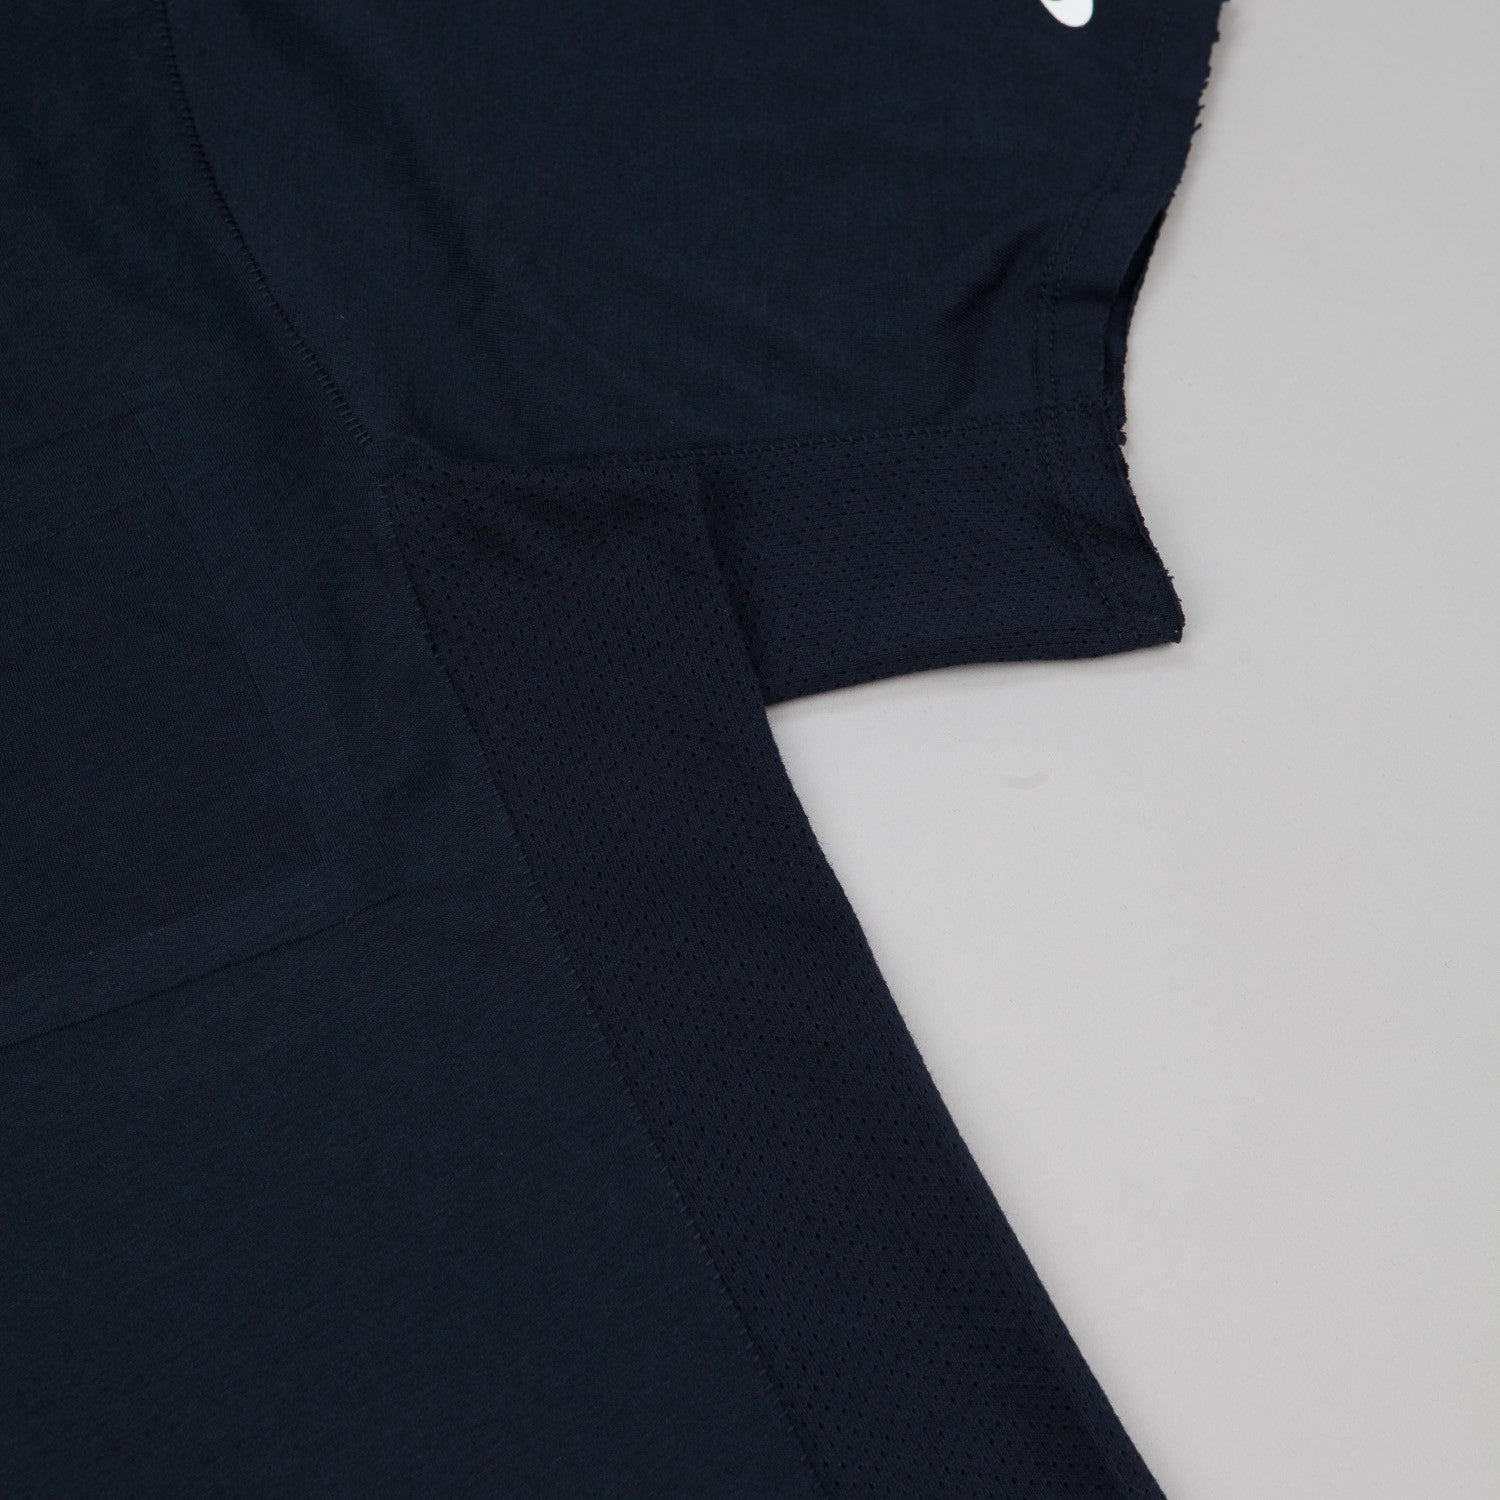 Nike SB Skyline DFC Short Sleeve Pocket T-Shirt - Dark Obsidian / White